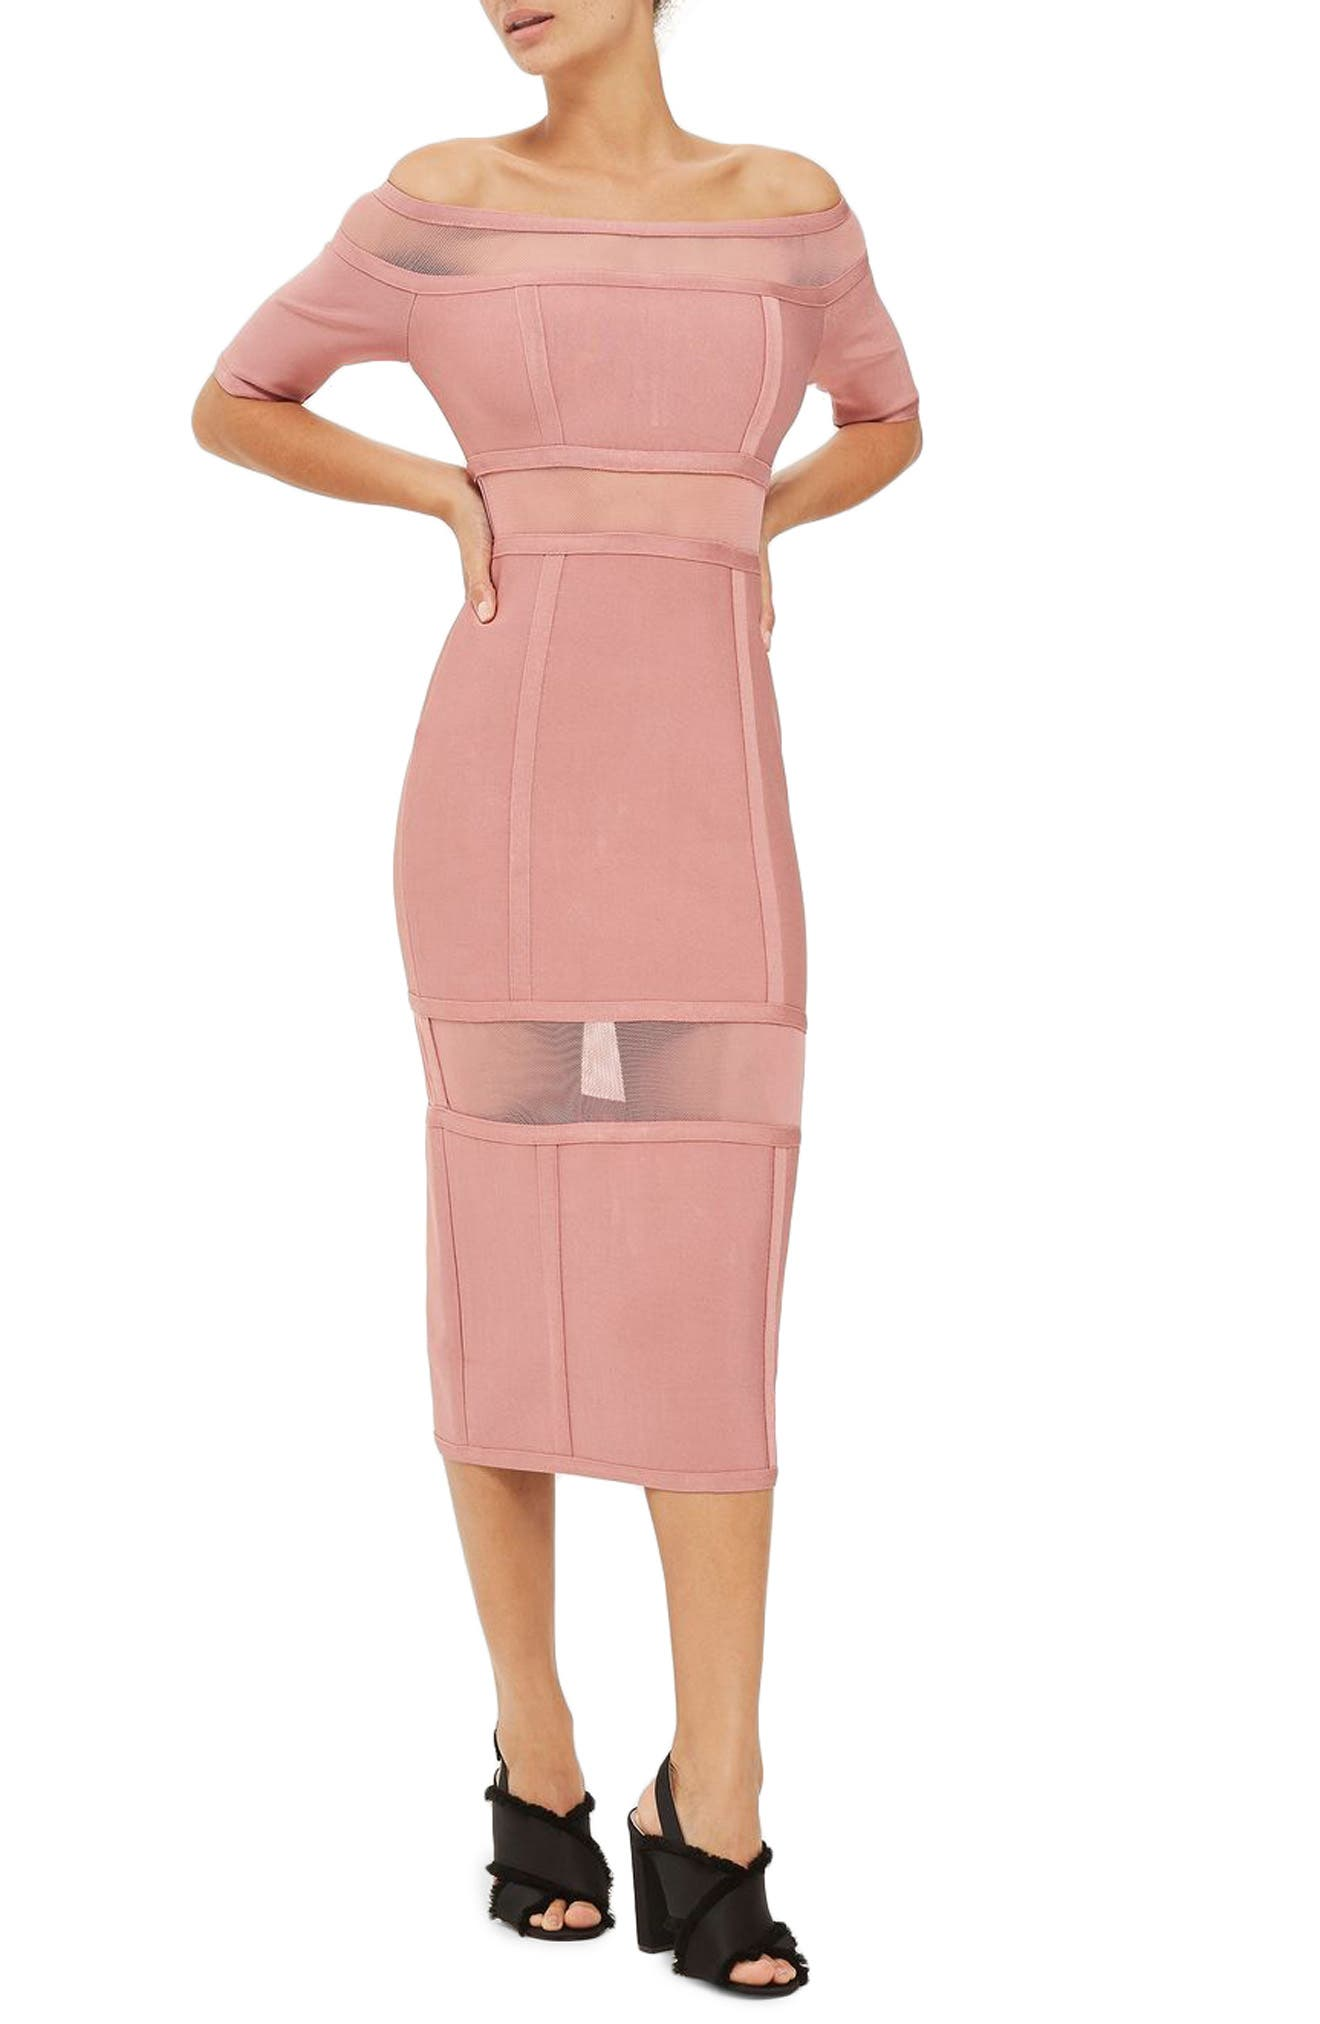 Sheer Panel Off the Shoulder Body-Con Midi Dress,                             Main thumbnail 1, color,                             650